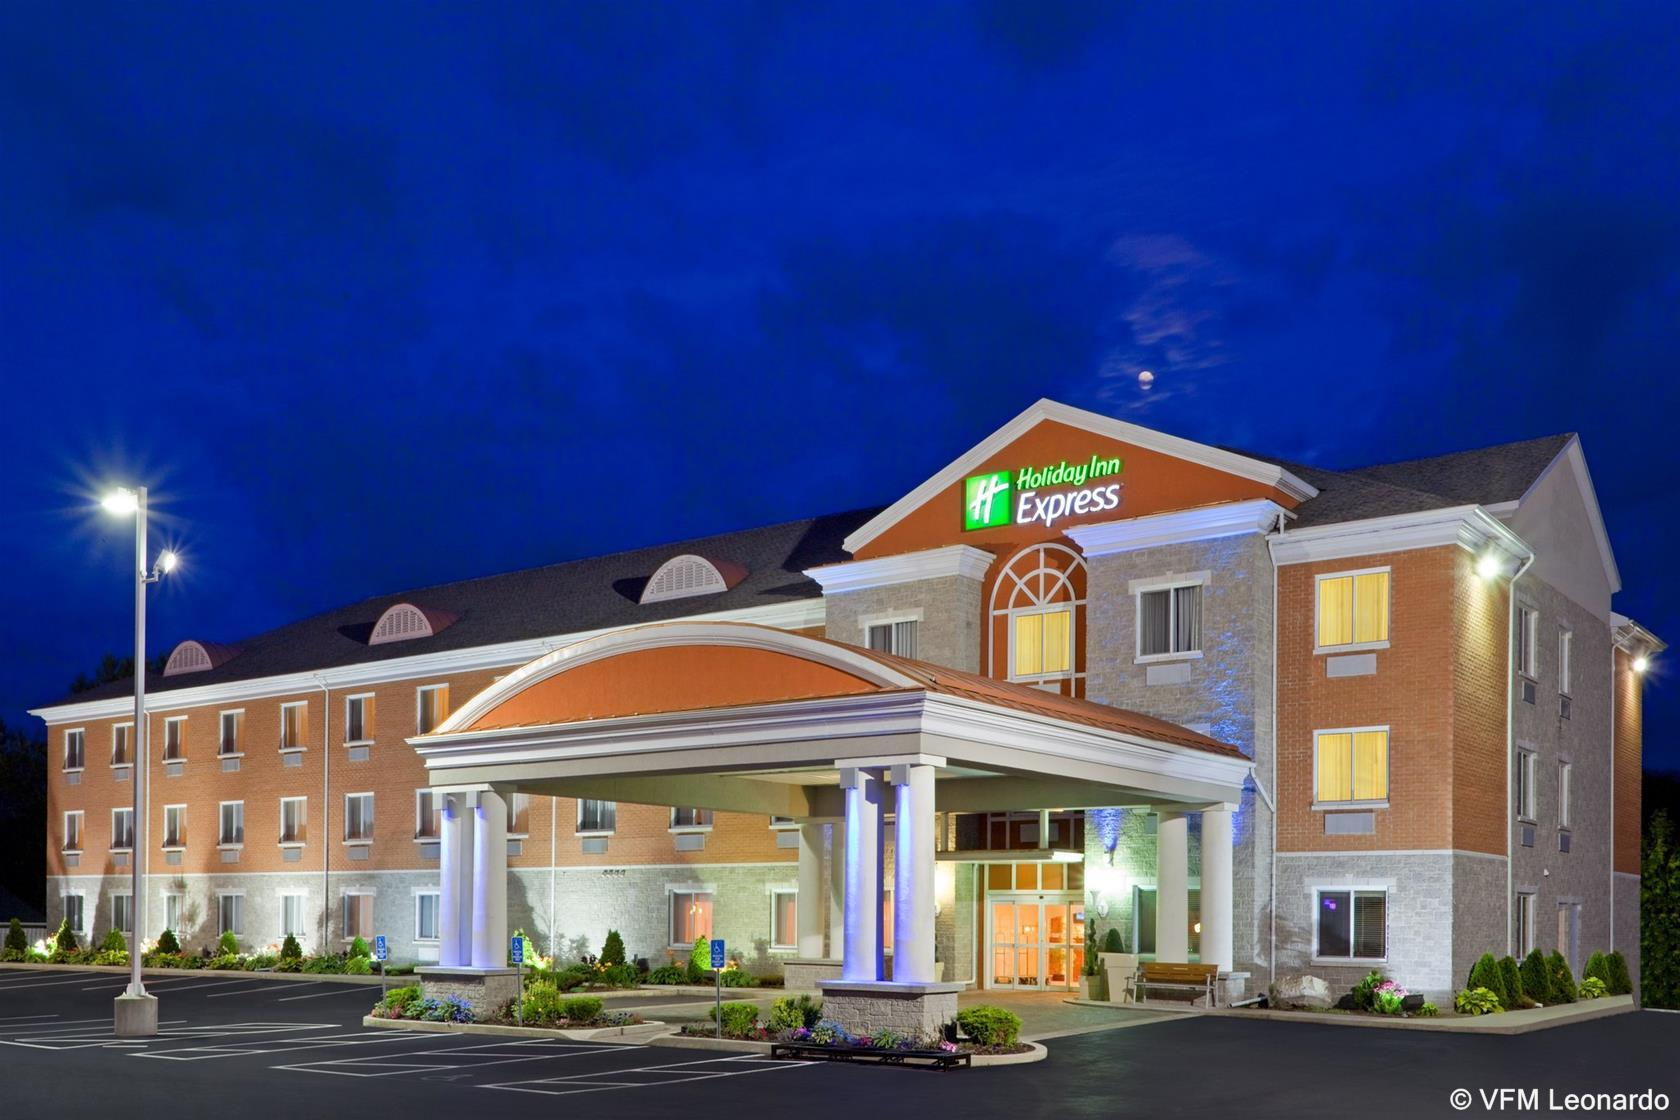 Holiday Inn Express Hotel & Suites, Leeds and Grenville